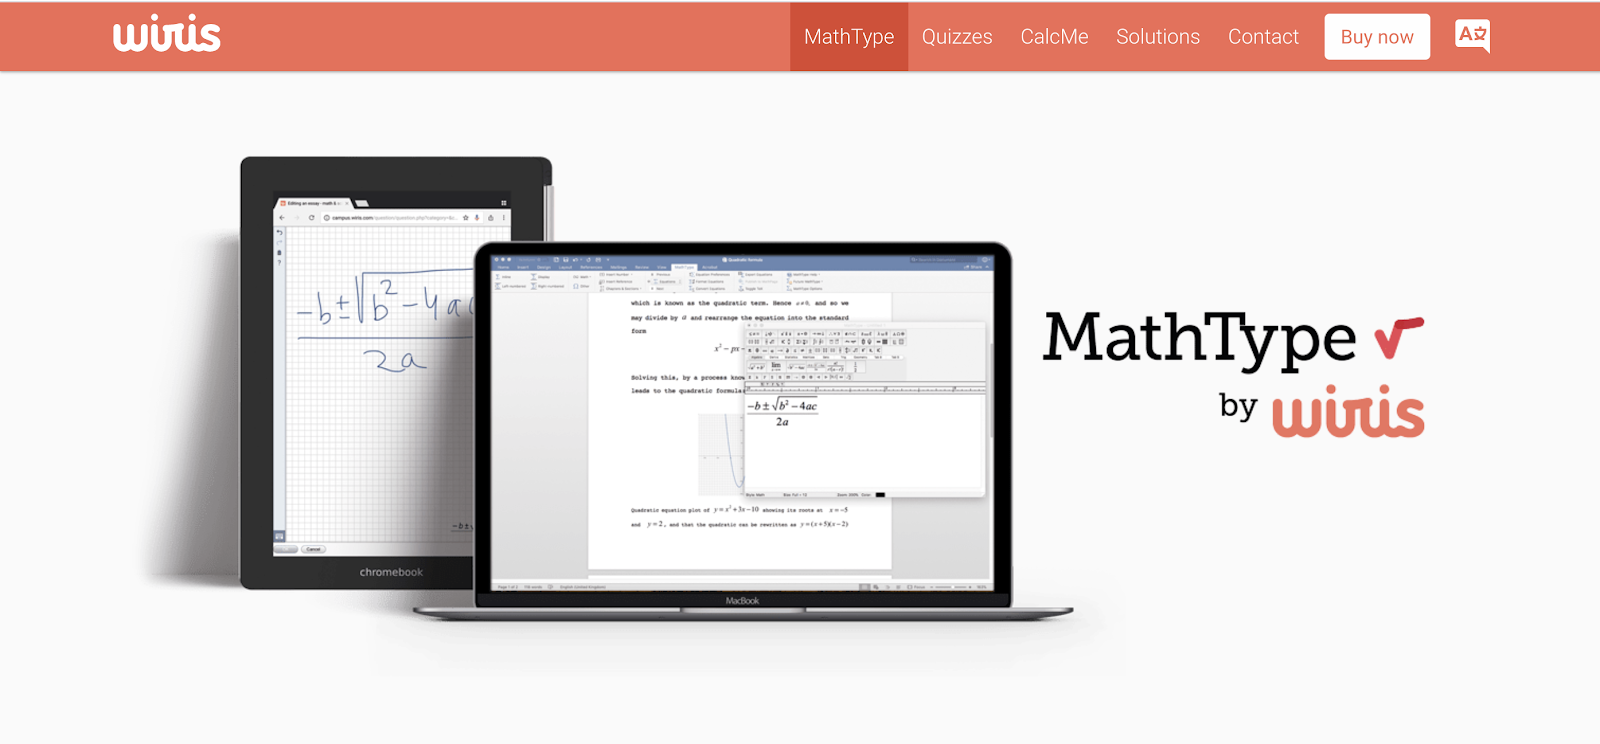 This is the MathType add-on.